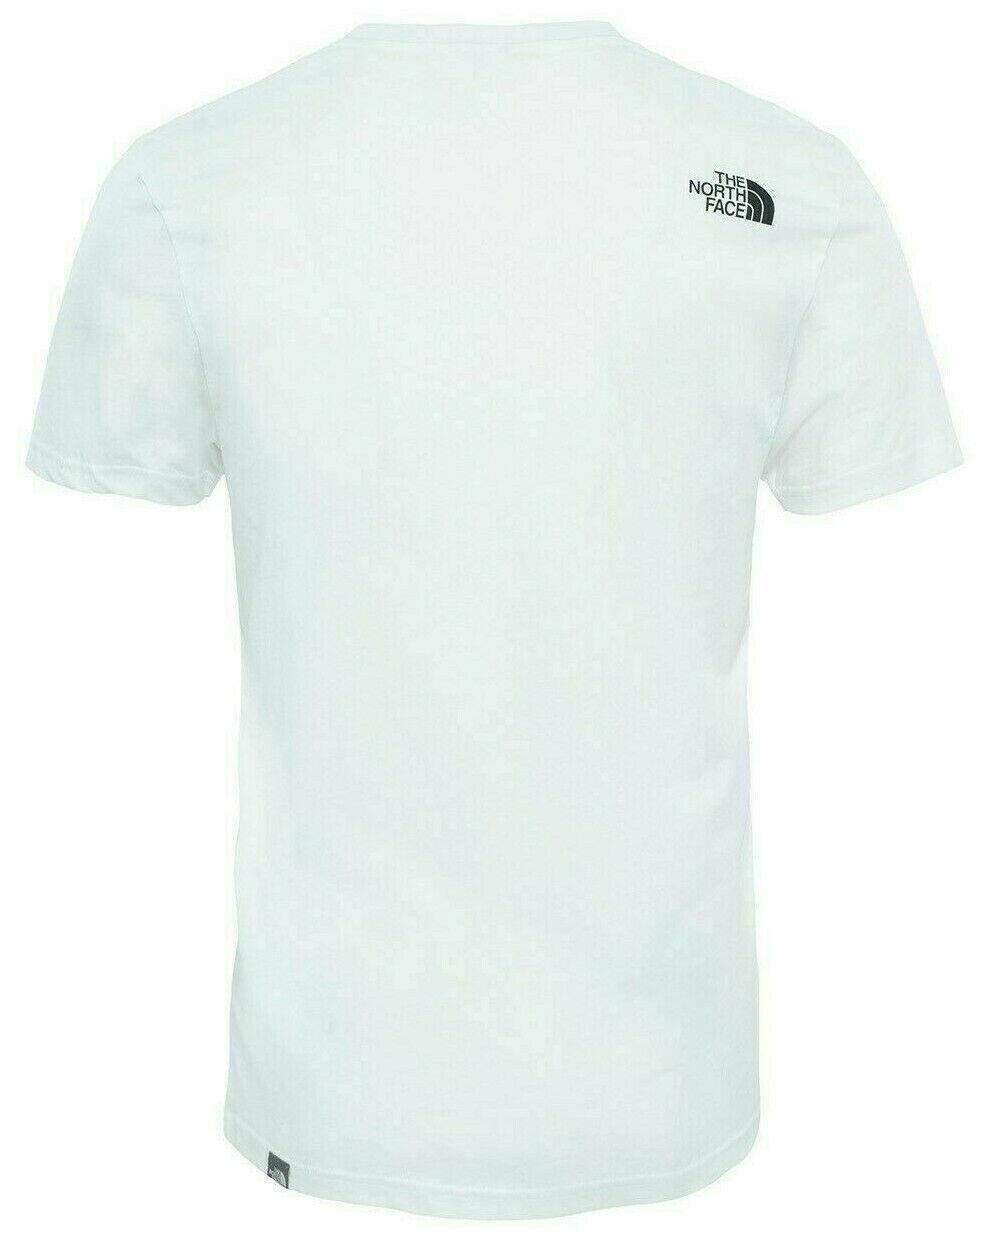 The-North-Face-Mens-TNF-Short-Sleeve-Tee-Cotton-T-Shirt-Crew-Neck-Top thumbnail 9